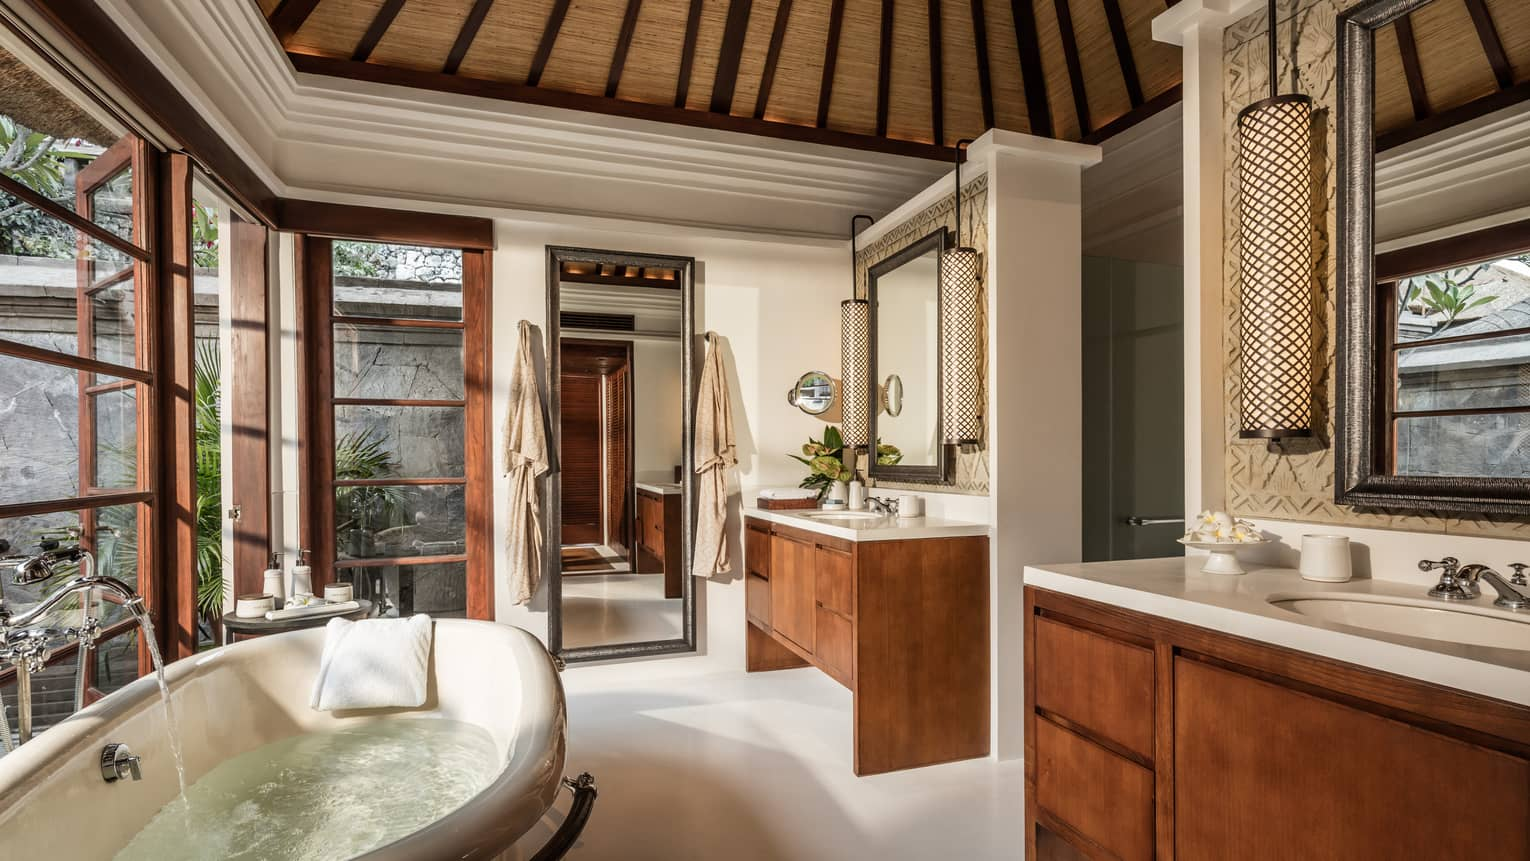 Water runs from faucet into deep tub in Imperial Villa bathroom with double wood vanities, mirror